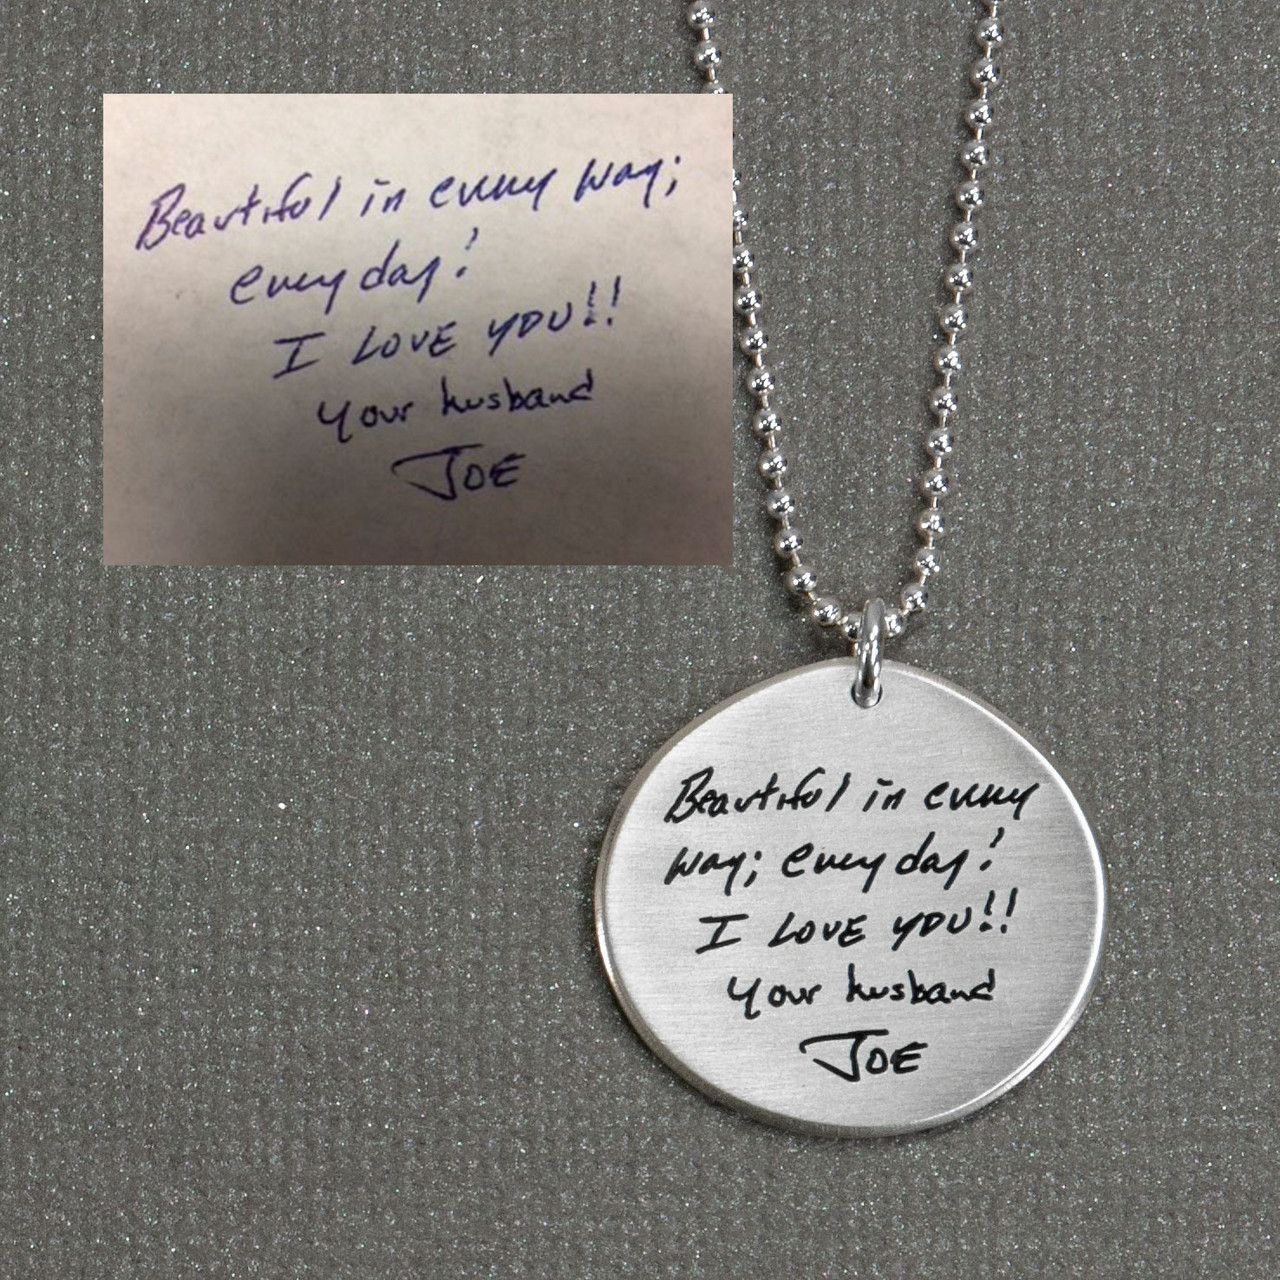 Memorial handwriting jewelry necklace in silver